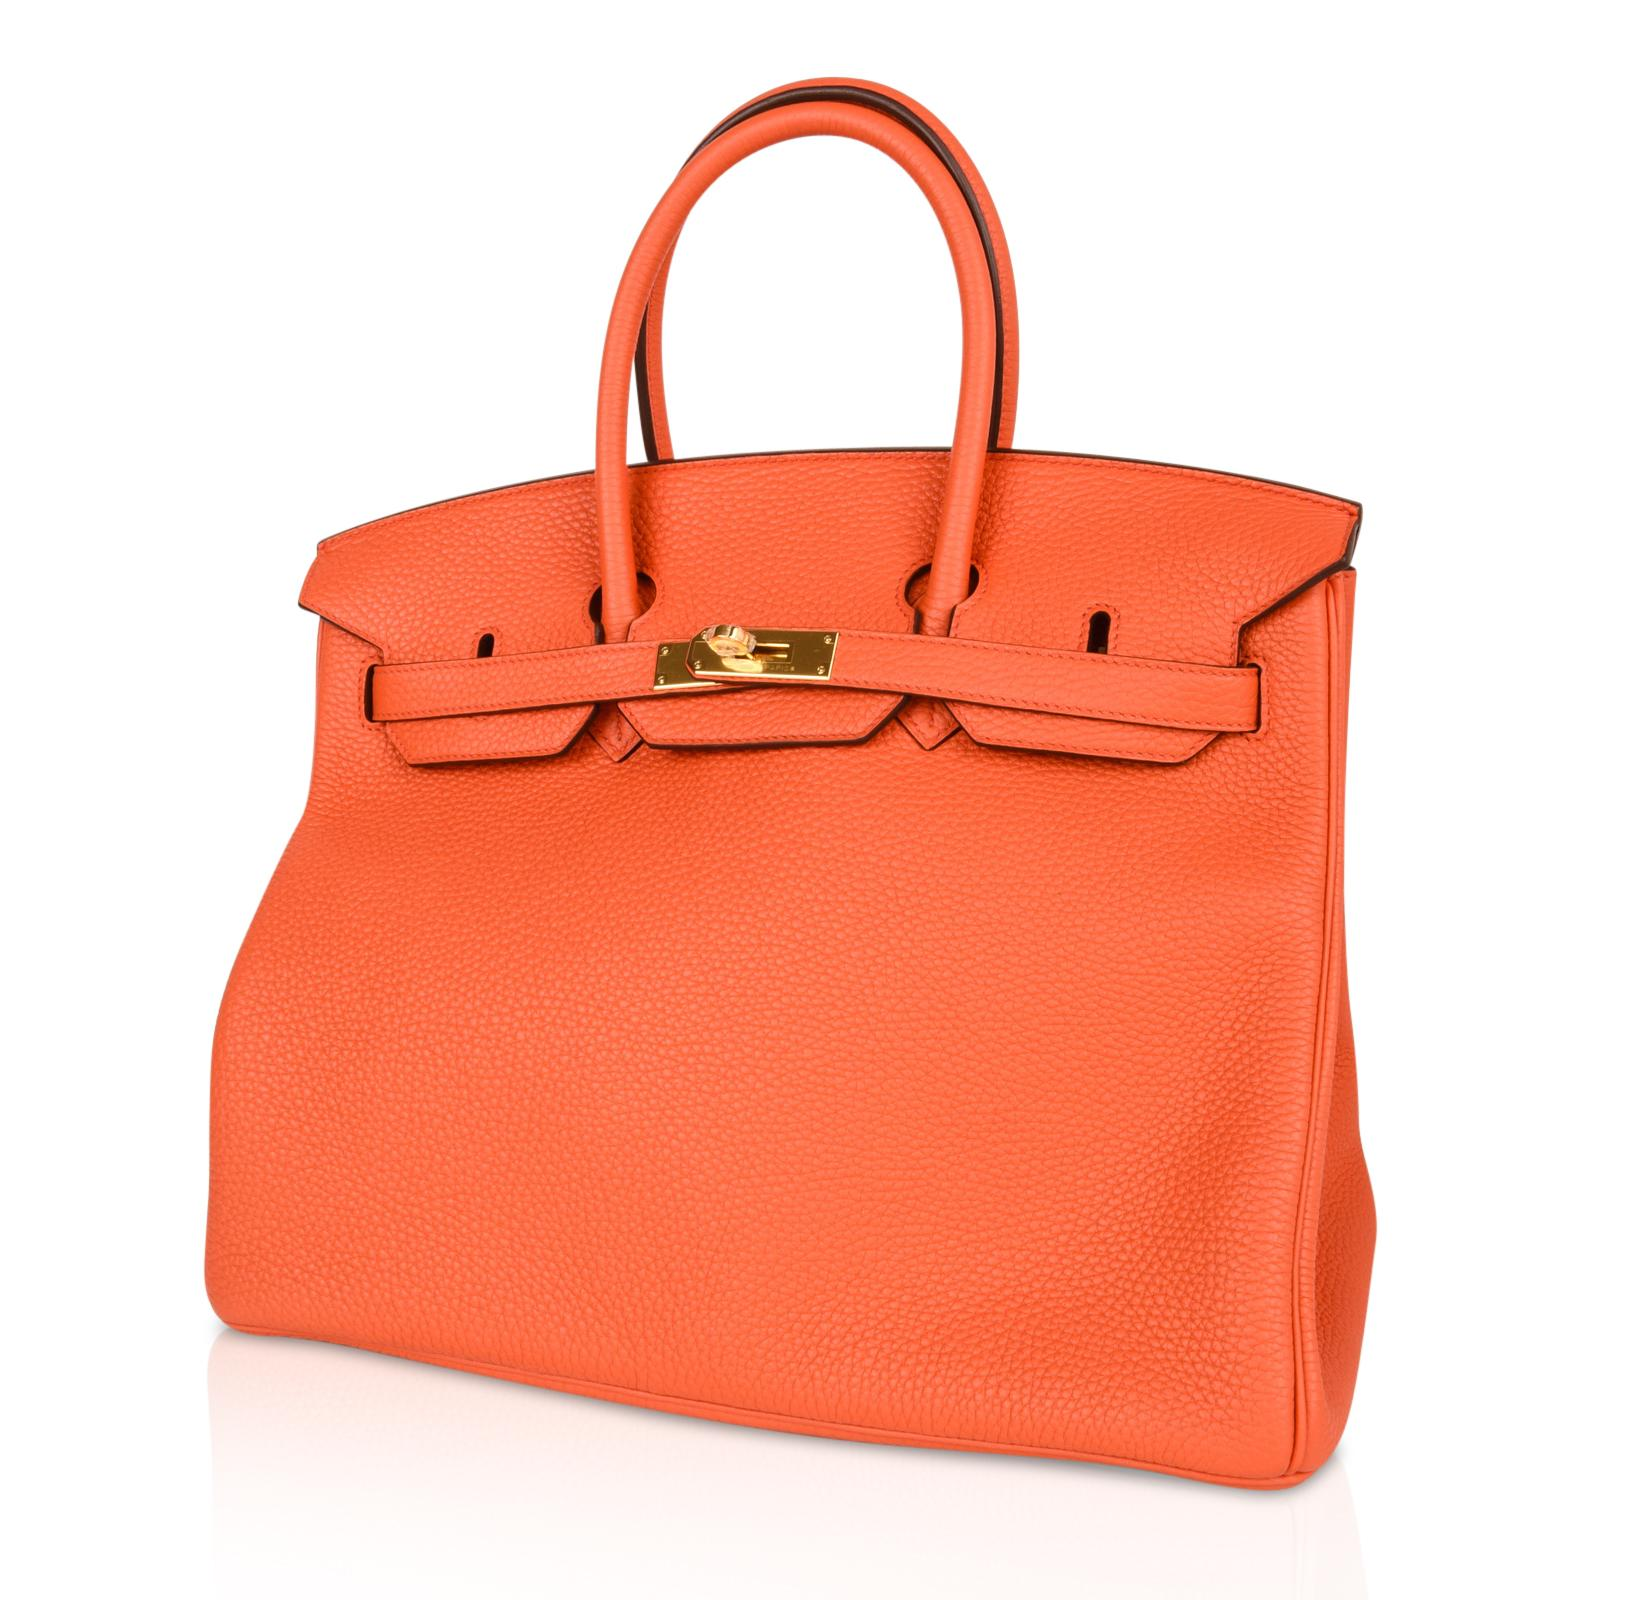 40cffded67936 get new pretty c93 orange box calf leather hermes kelly bag sellier gold  hardware 8b98a ca436  cheapest hermes birkin 35 bag orange poppy togo gold  hardware ...